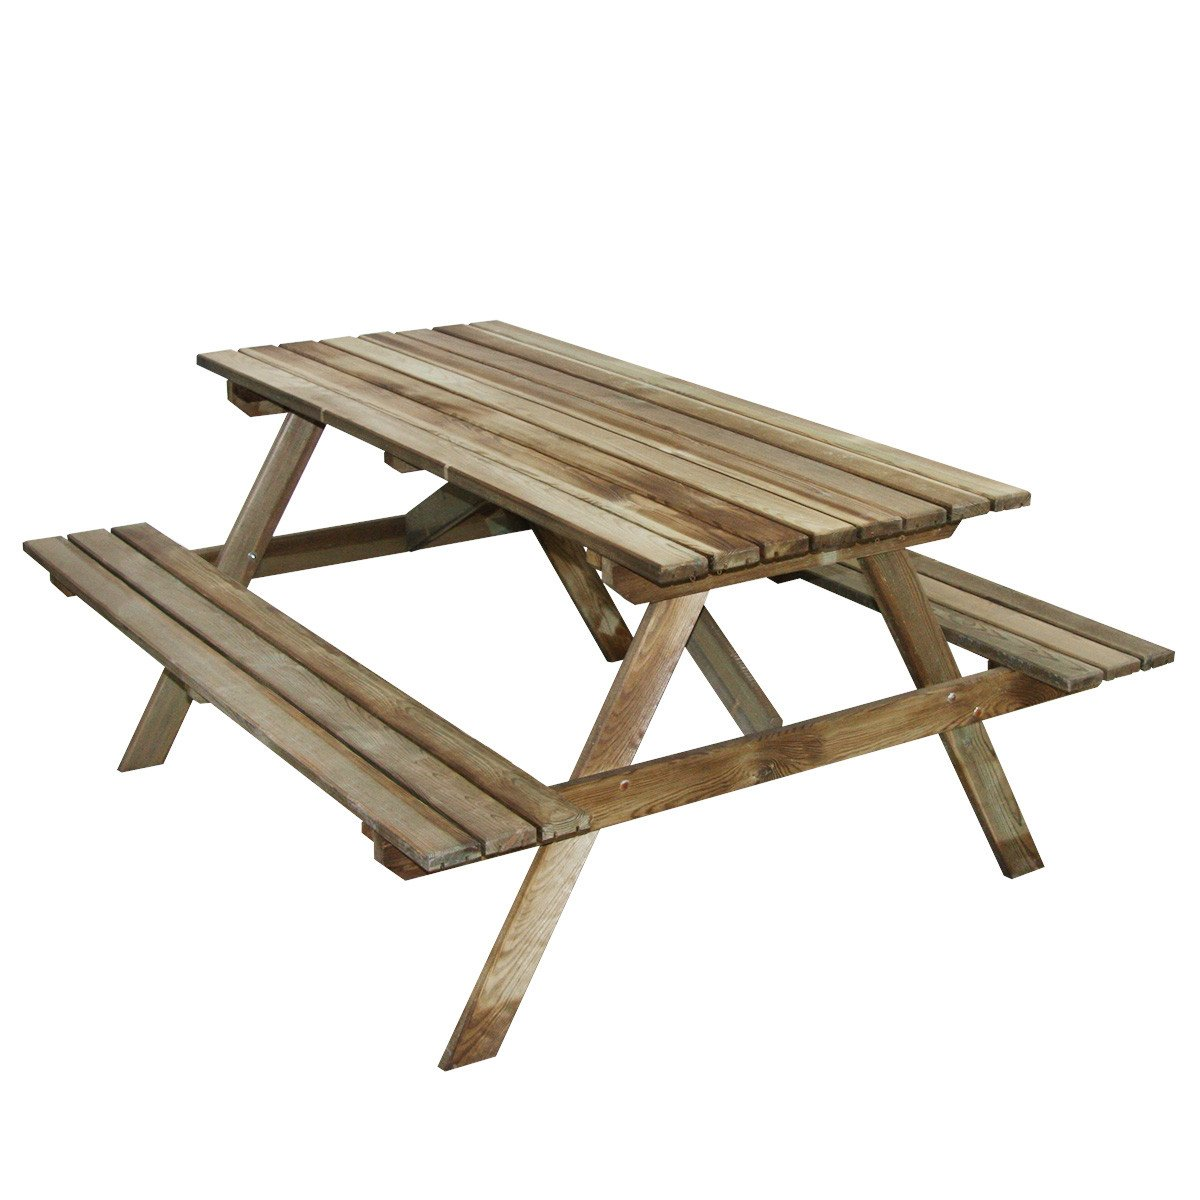 Table pique-nique en bois 4 places Marly